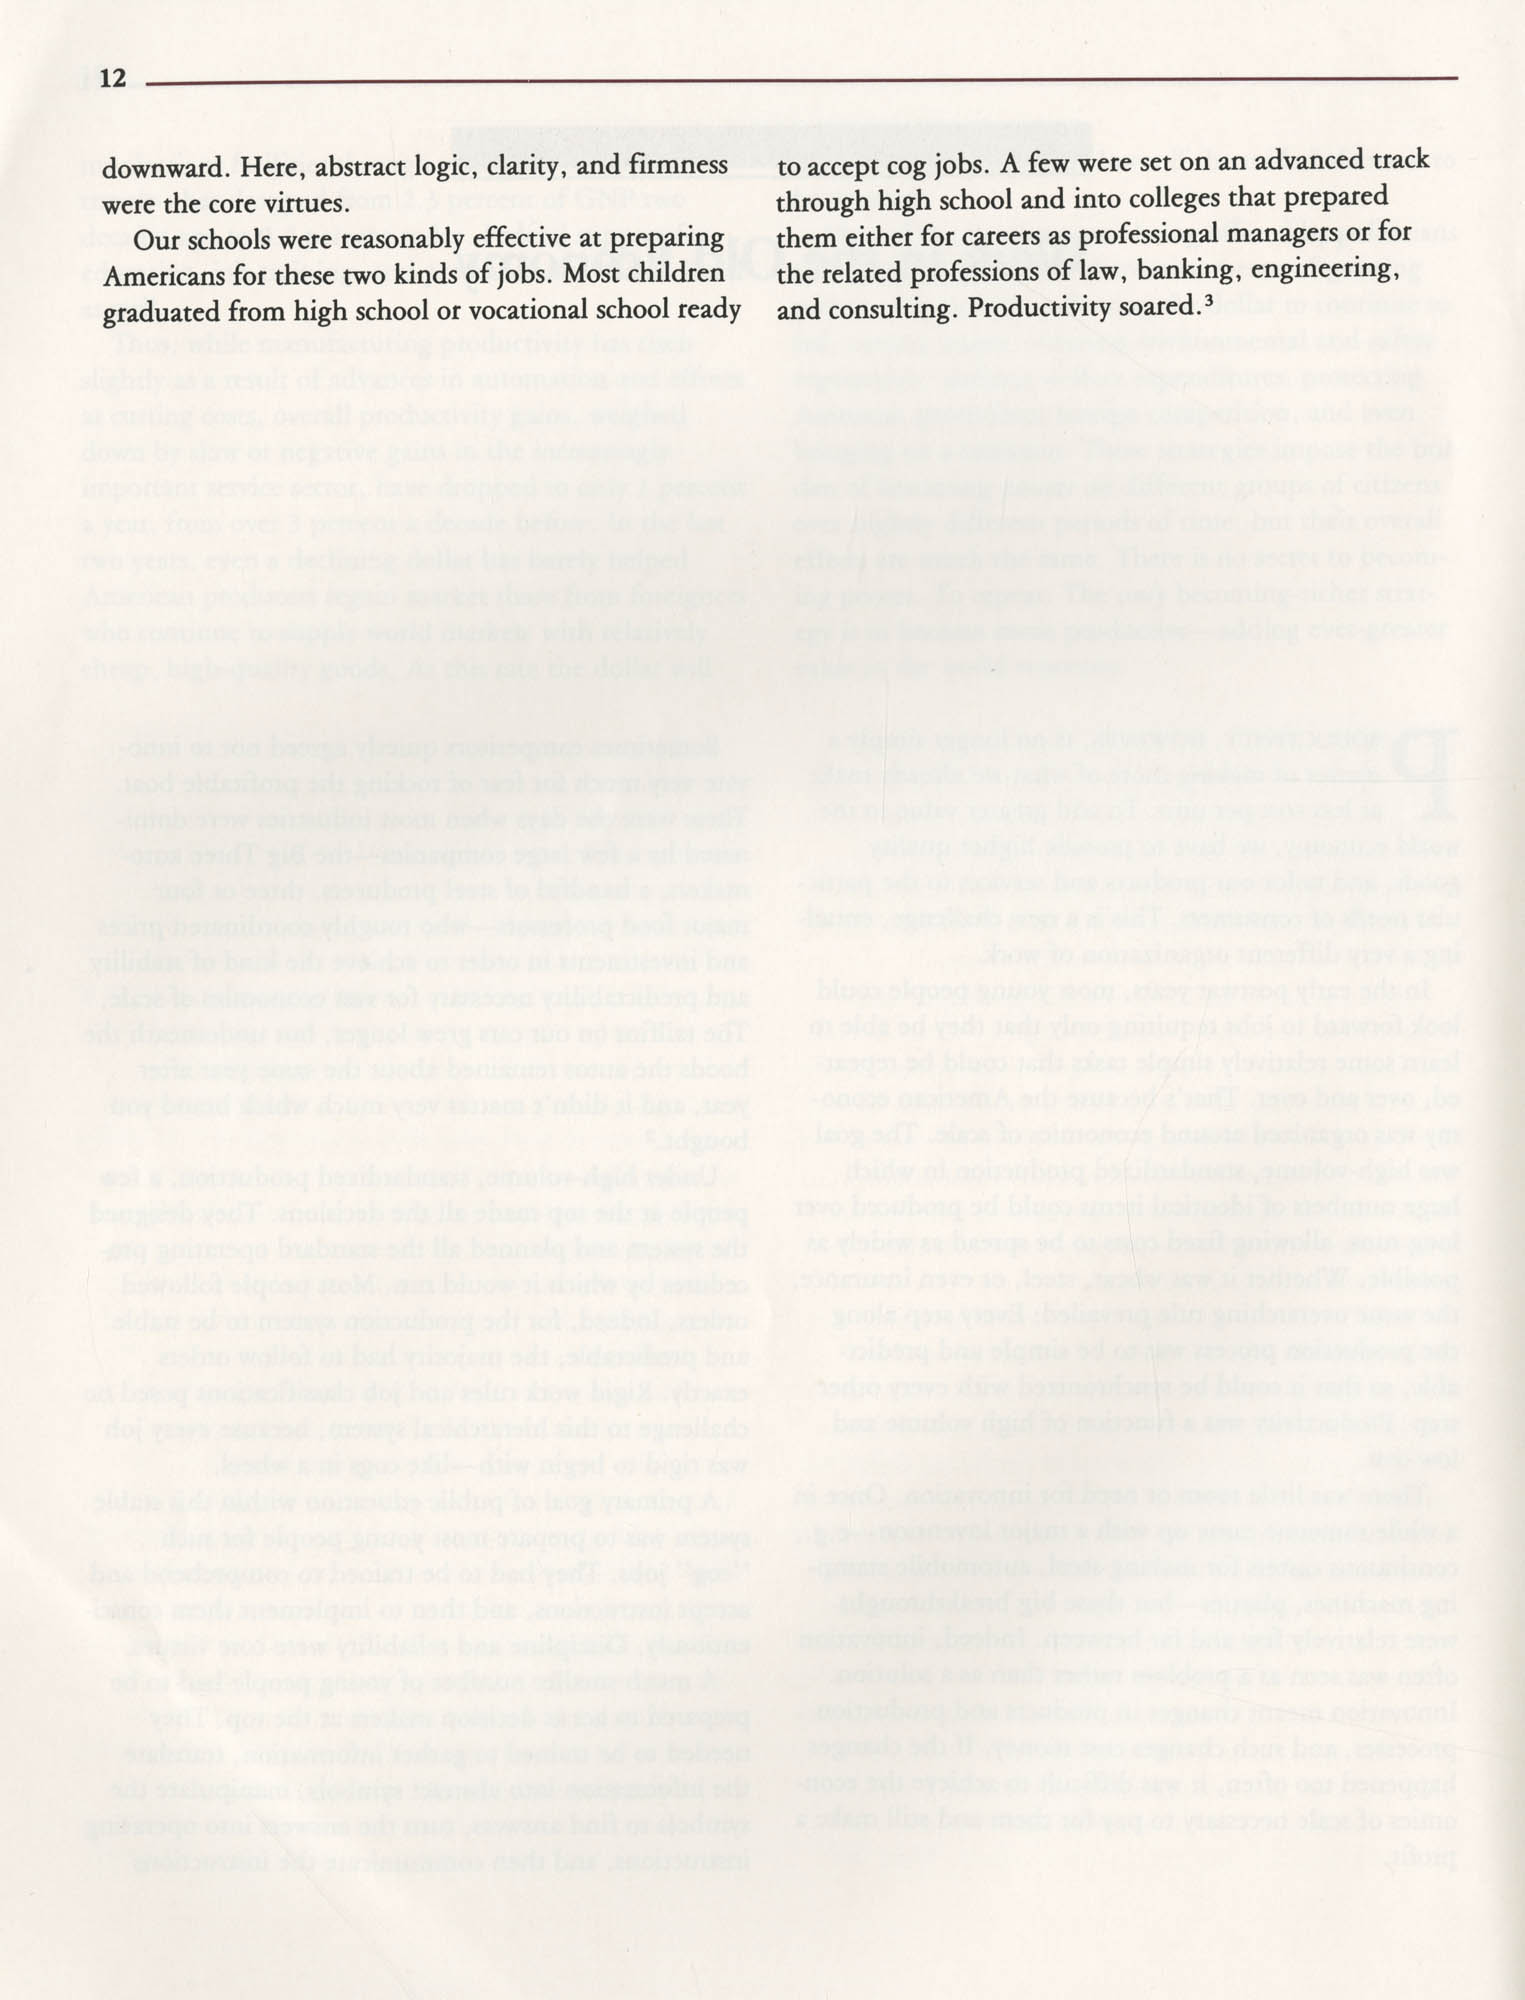 Education and the Next Economy, Page 12